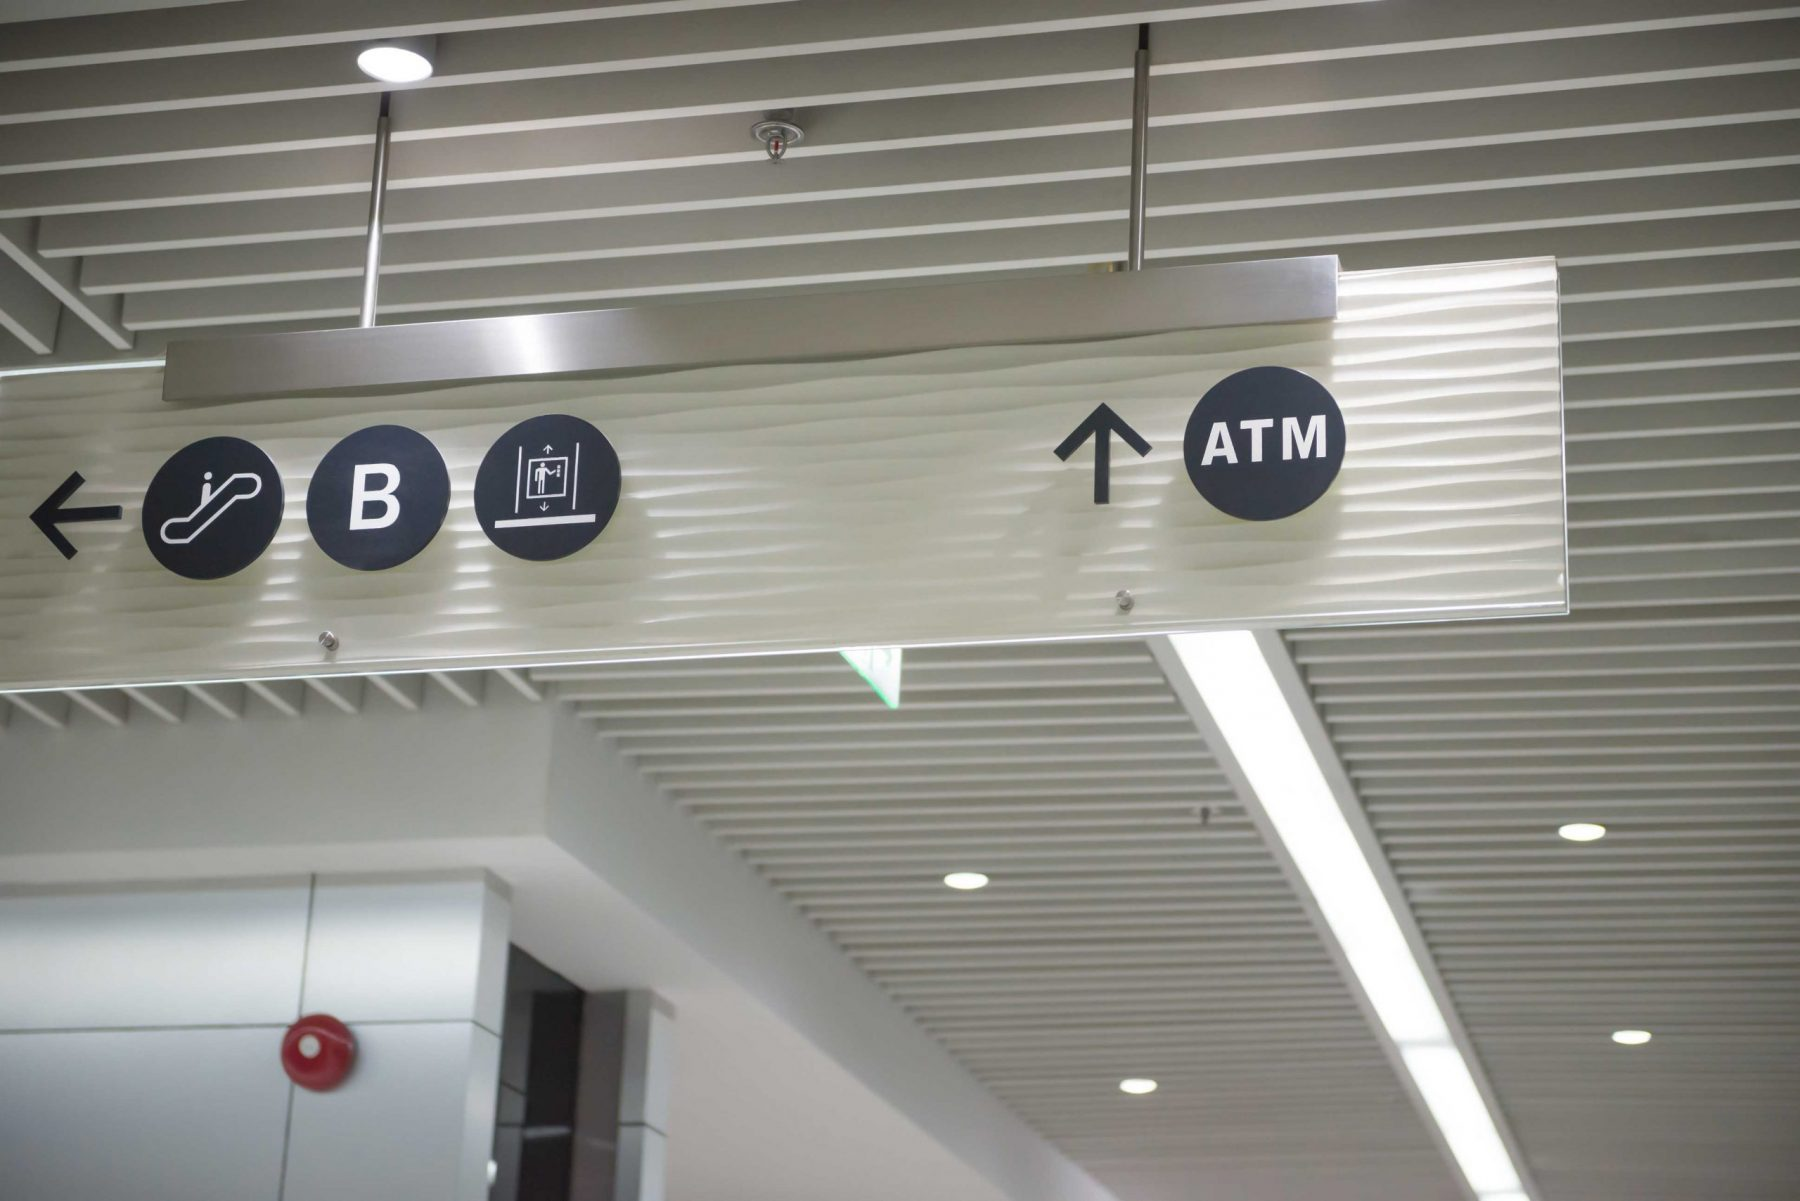 Wayfinding sign indoors to show where the elevators and atm is located